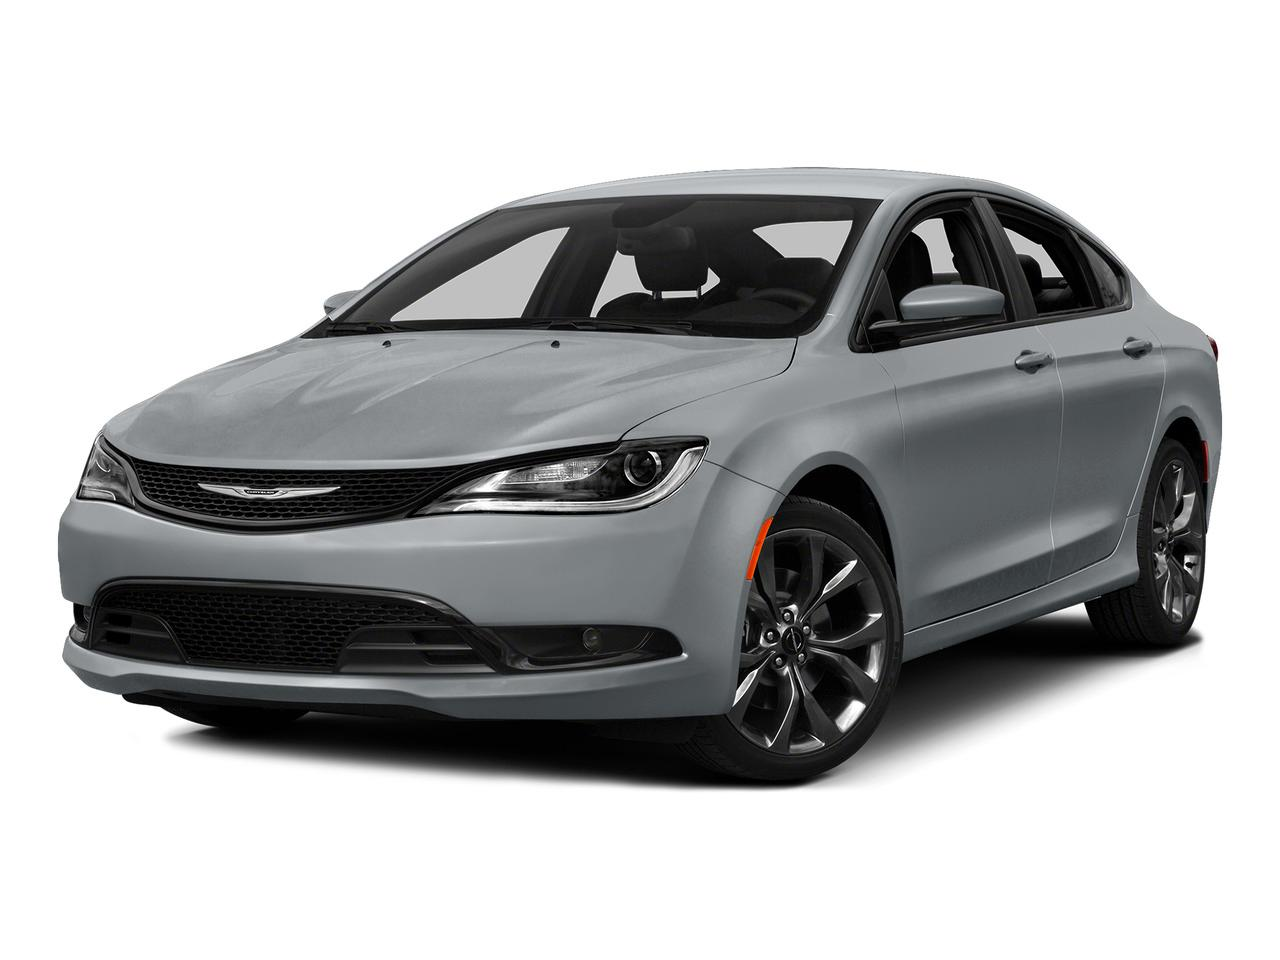 2015 Chrysler 200 Vehicle Photo in Concord, NC 28027